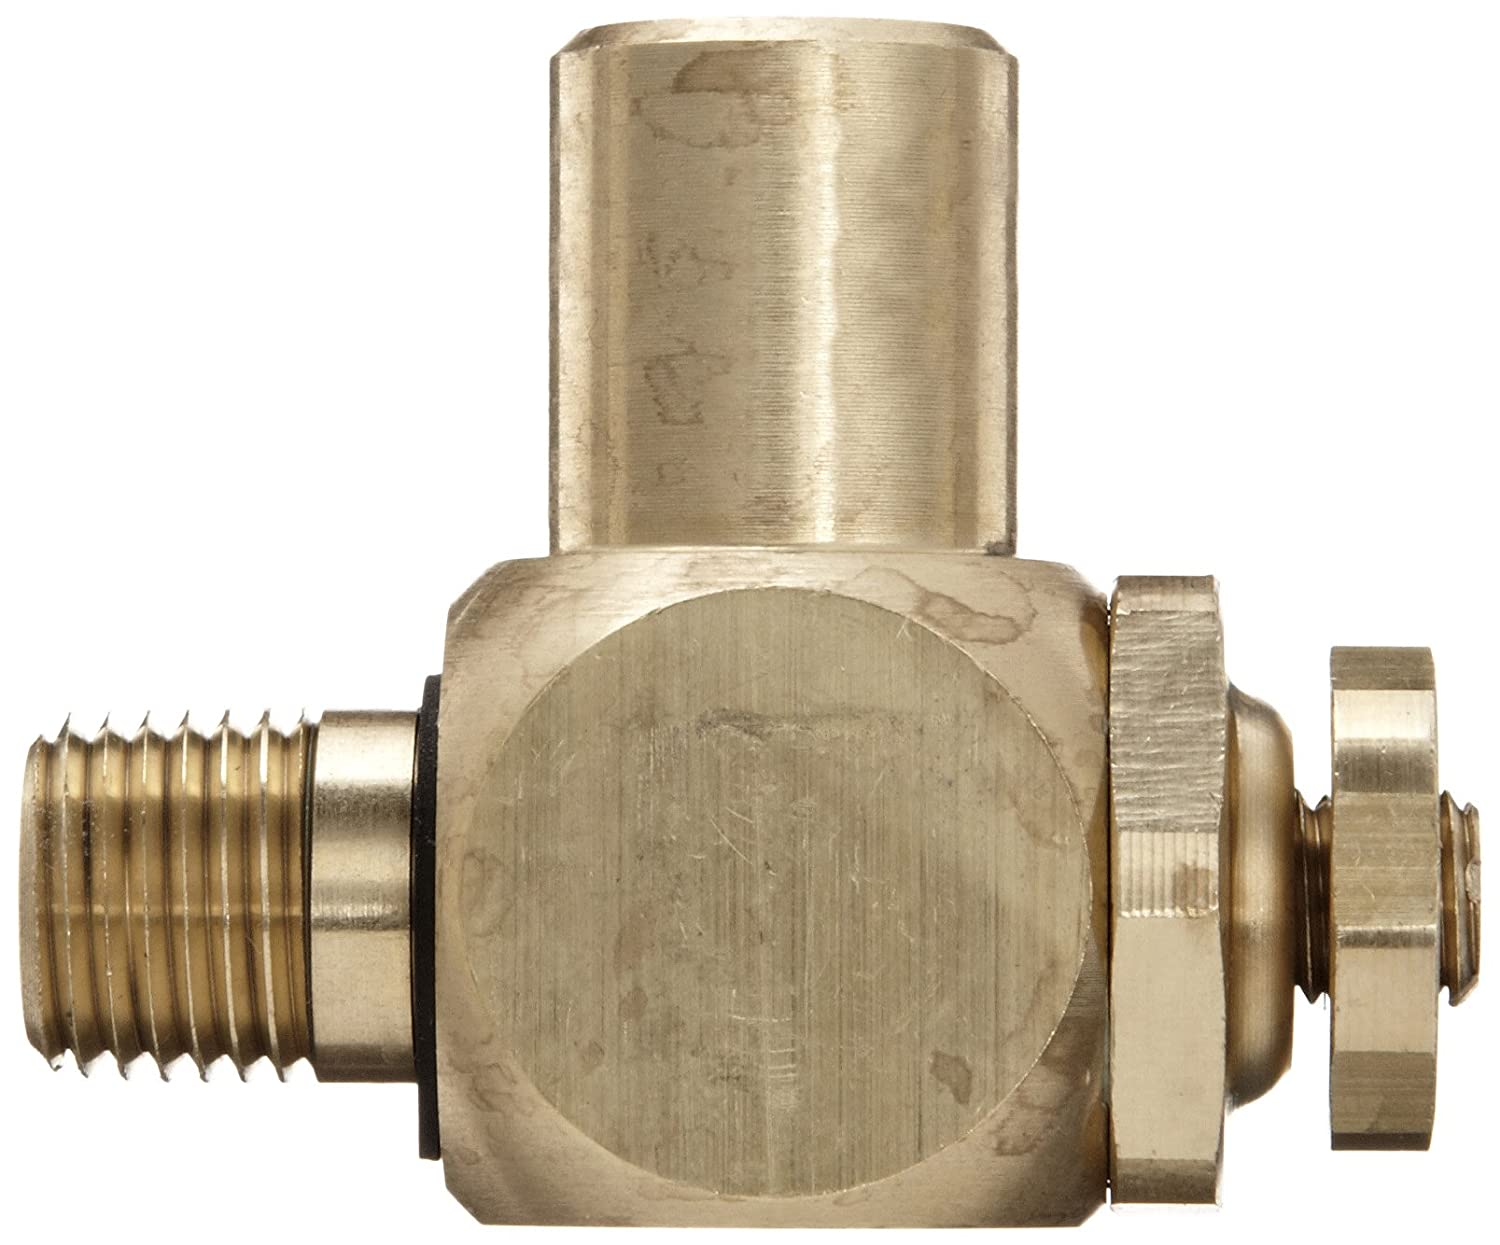 125 psi 1//4 NPT Male x Female Parker 032510250 3251 Series Brass Right Angle Flow Control Valves 1//4 NPT Male x Female